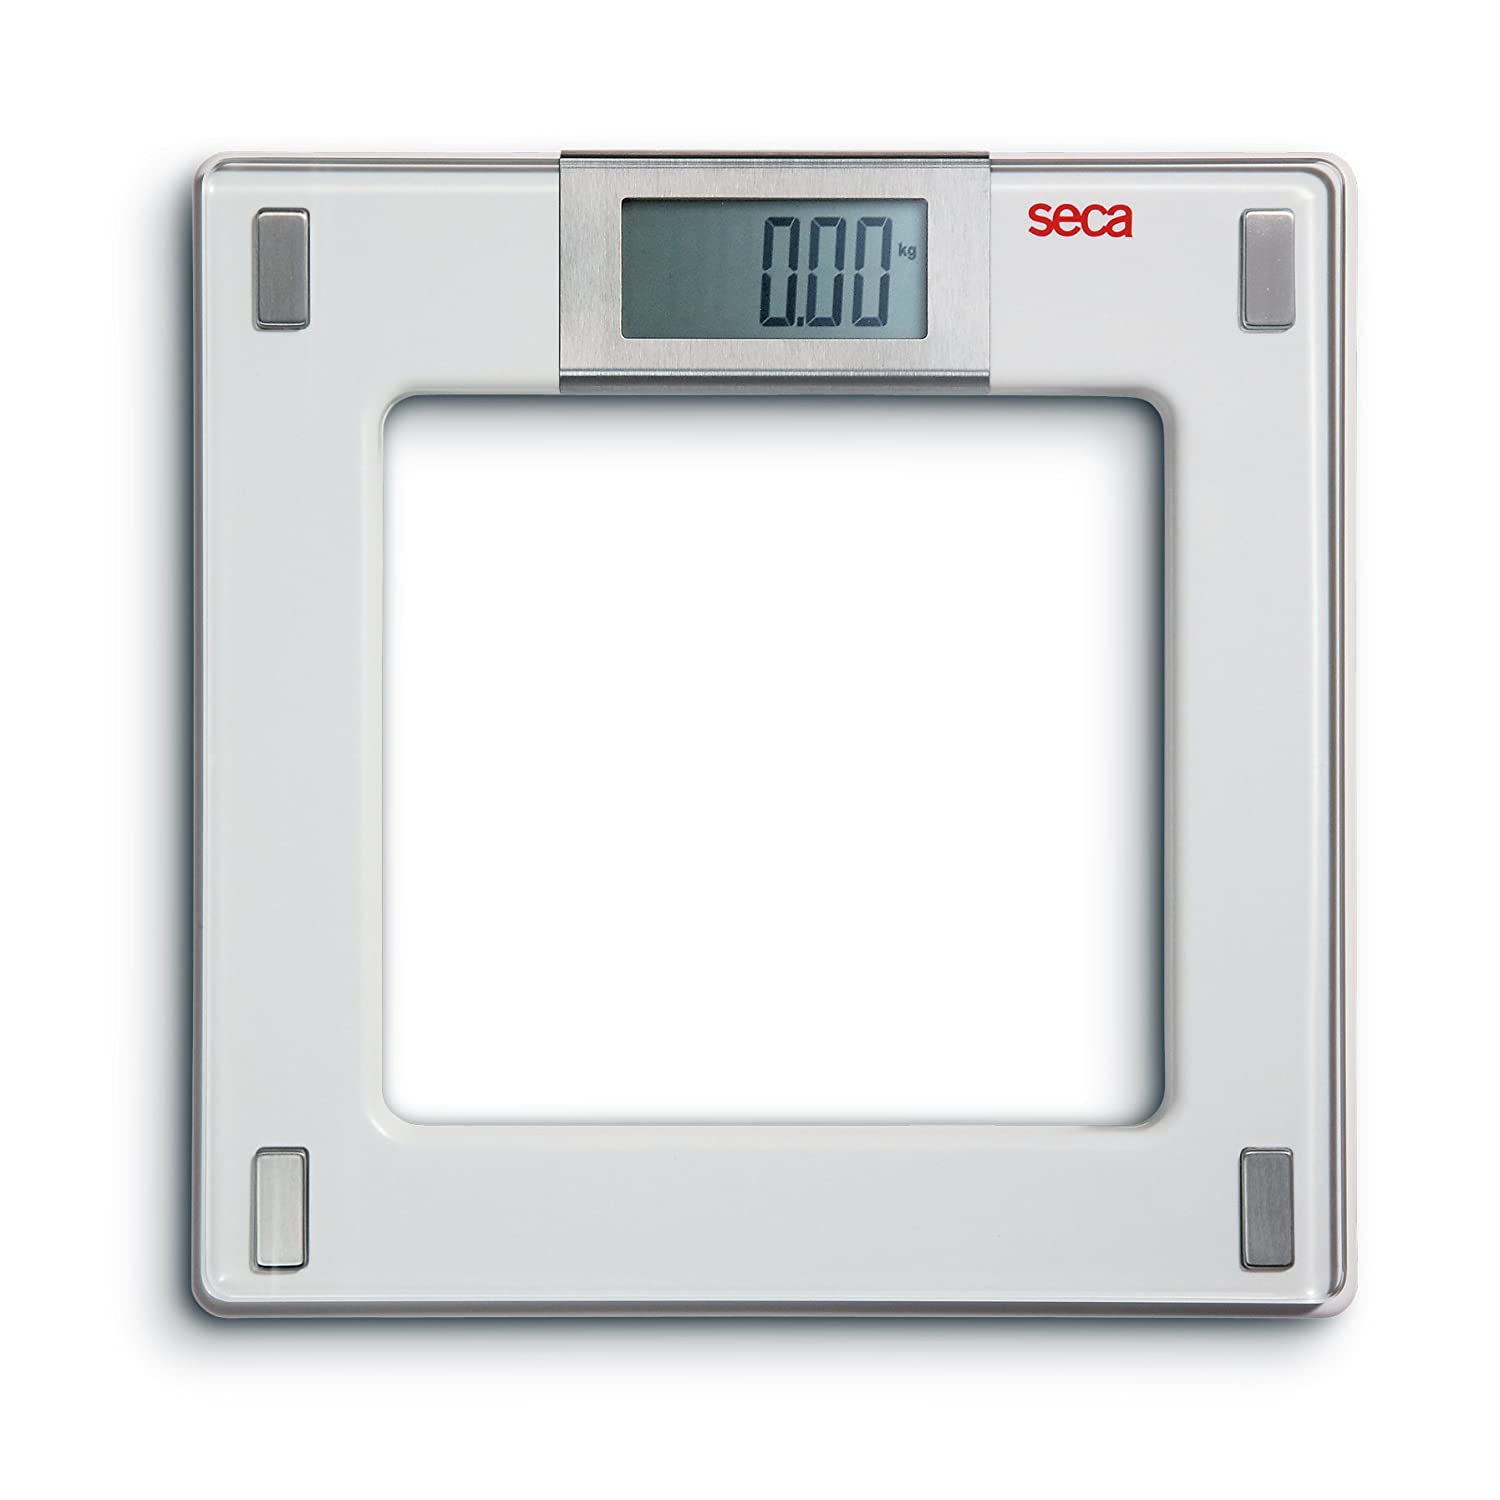 Seca 807 Aura Digital Glass Bathroom Scale